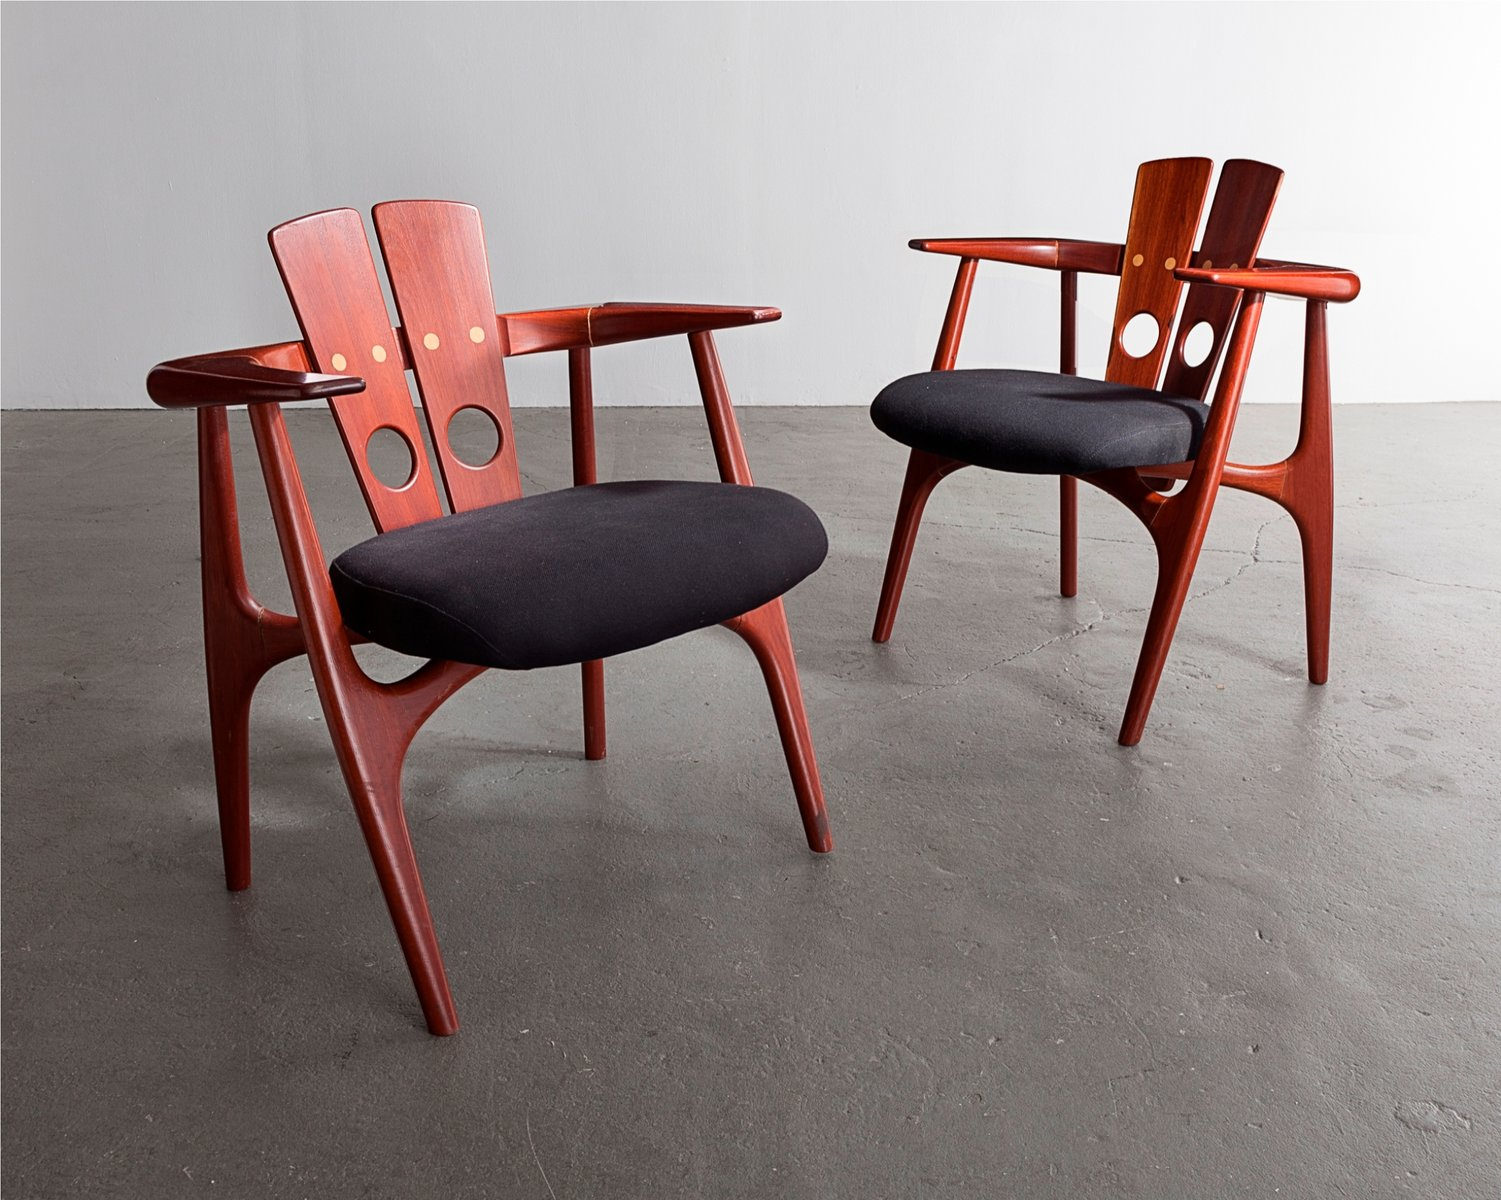 Katita Chair By Sergio Rodrigues, 2004 For Sale At Pamono